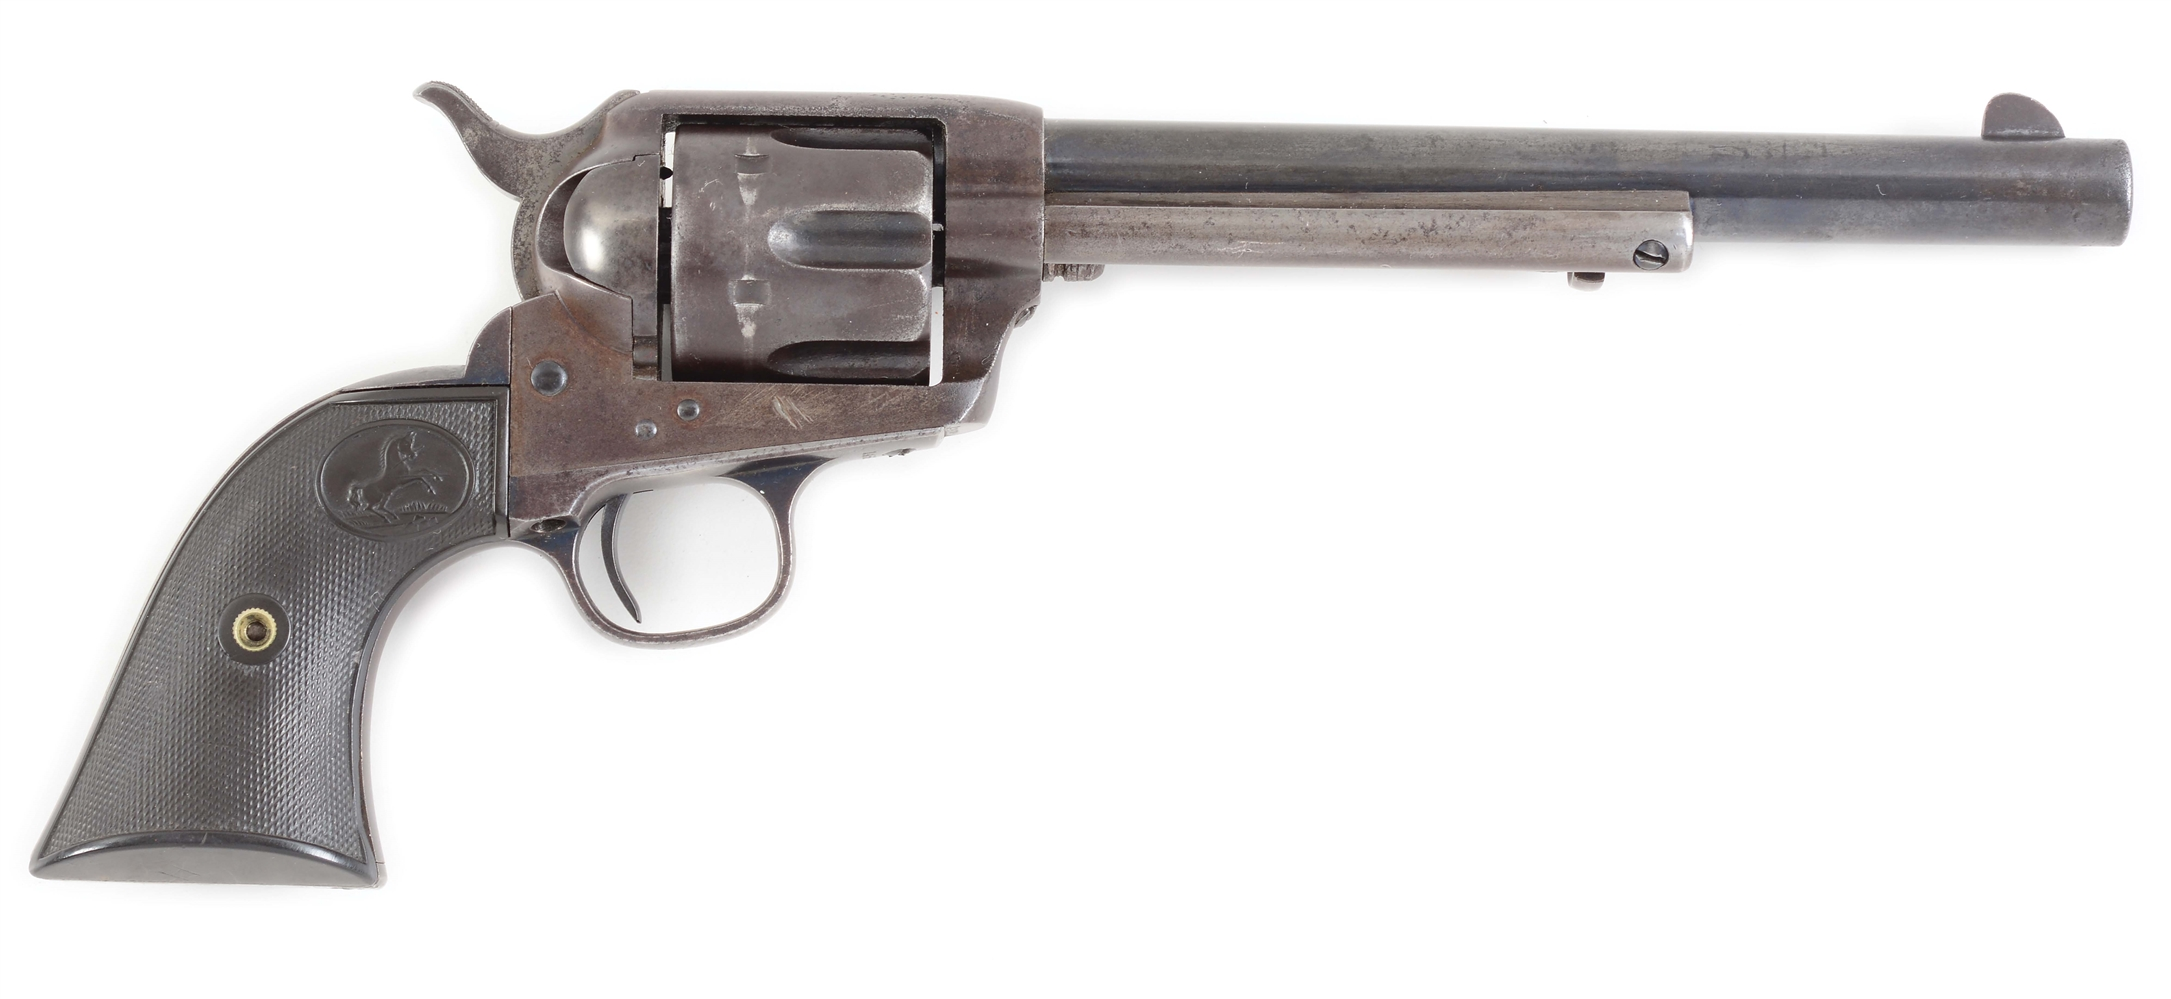 (A) COLT FRONTIER SIX SHOOTER SINGLE ACTION ARMY REVOLVER WITH FACTORY LETTER.